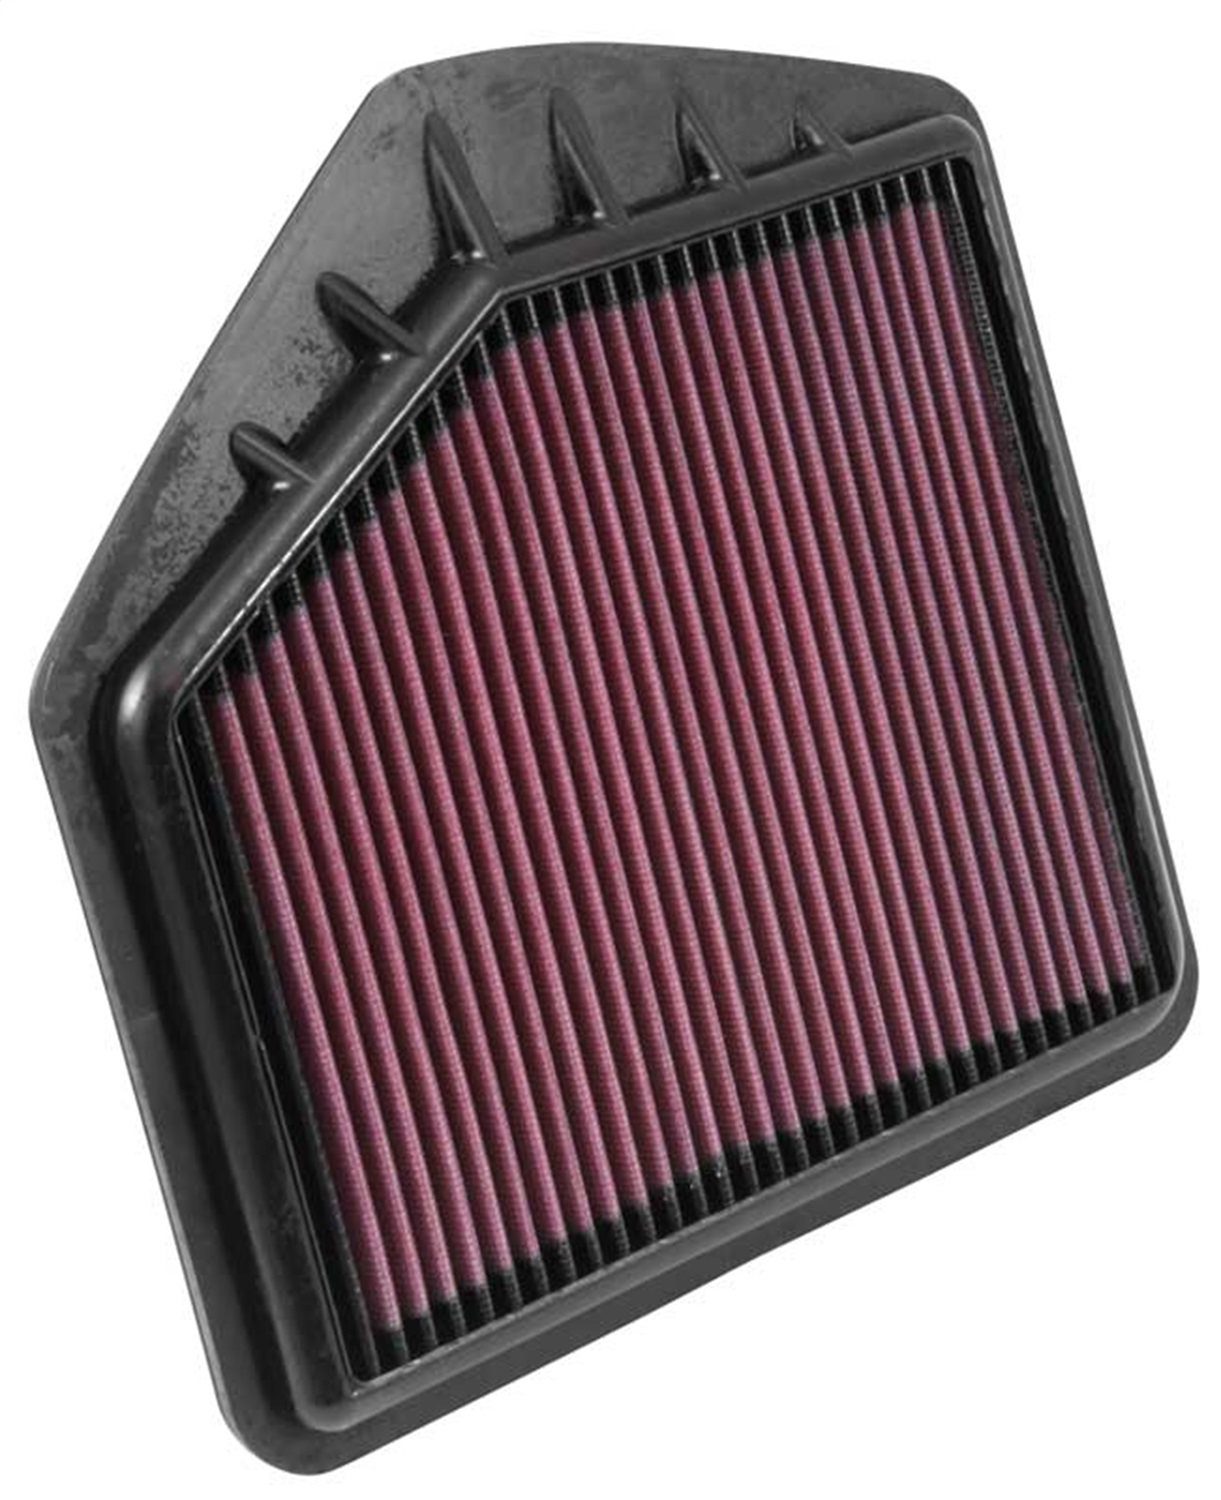 K&N Filters 33-5020 Air Filter Fits 15 Genesis 33-5020